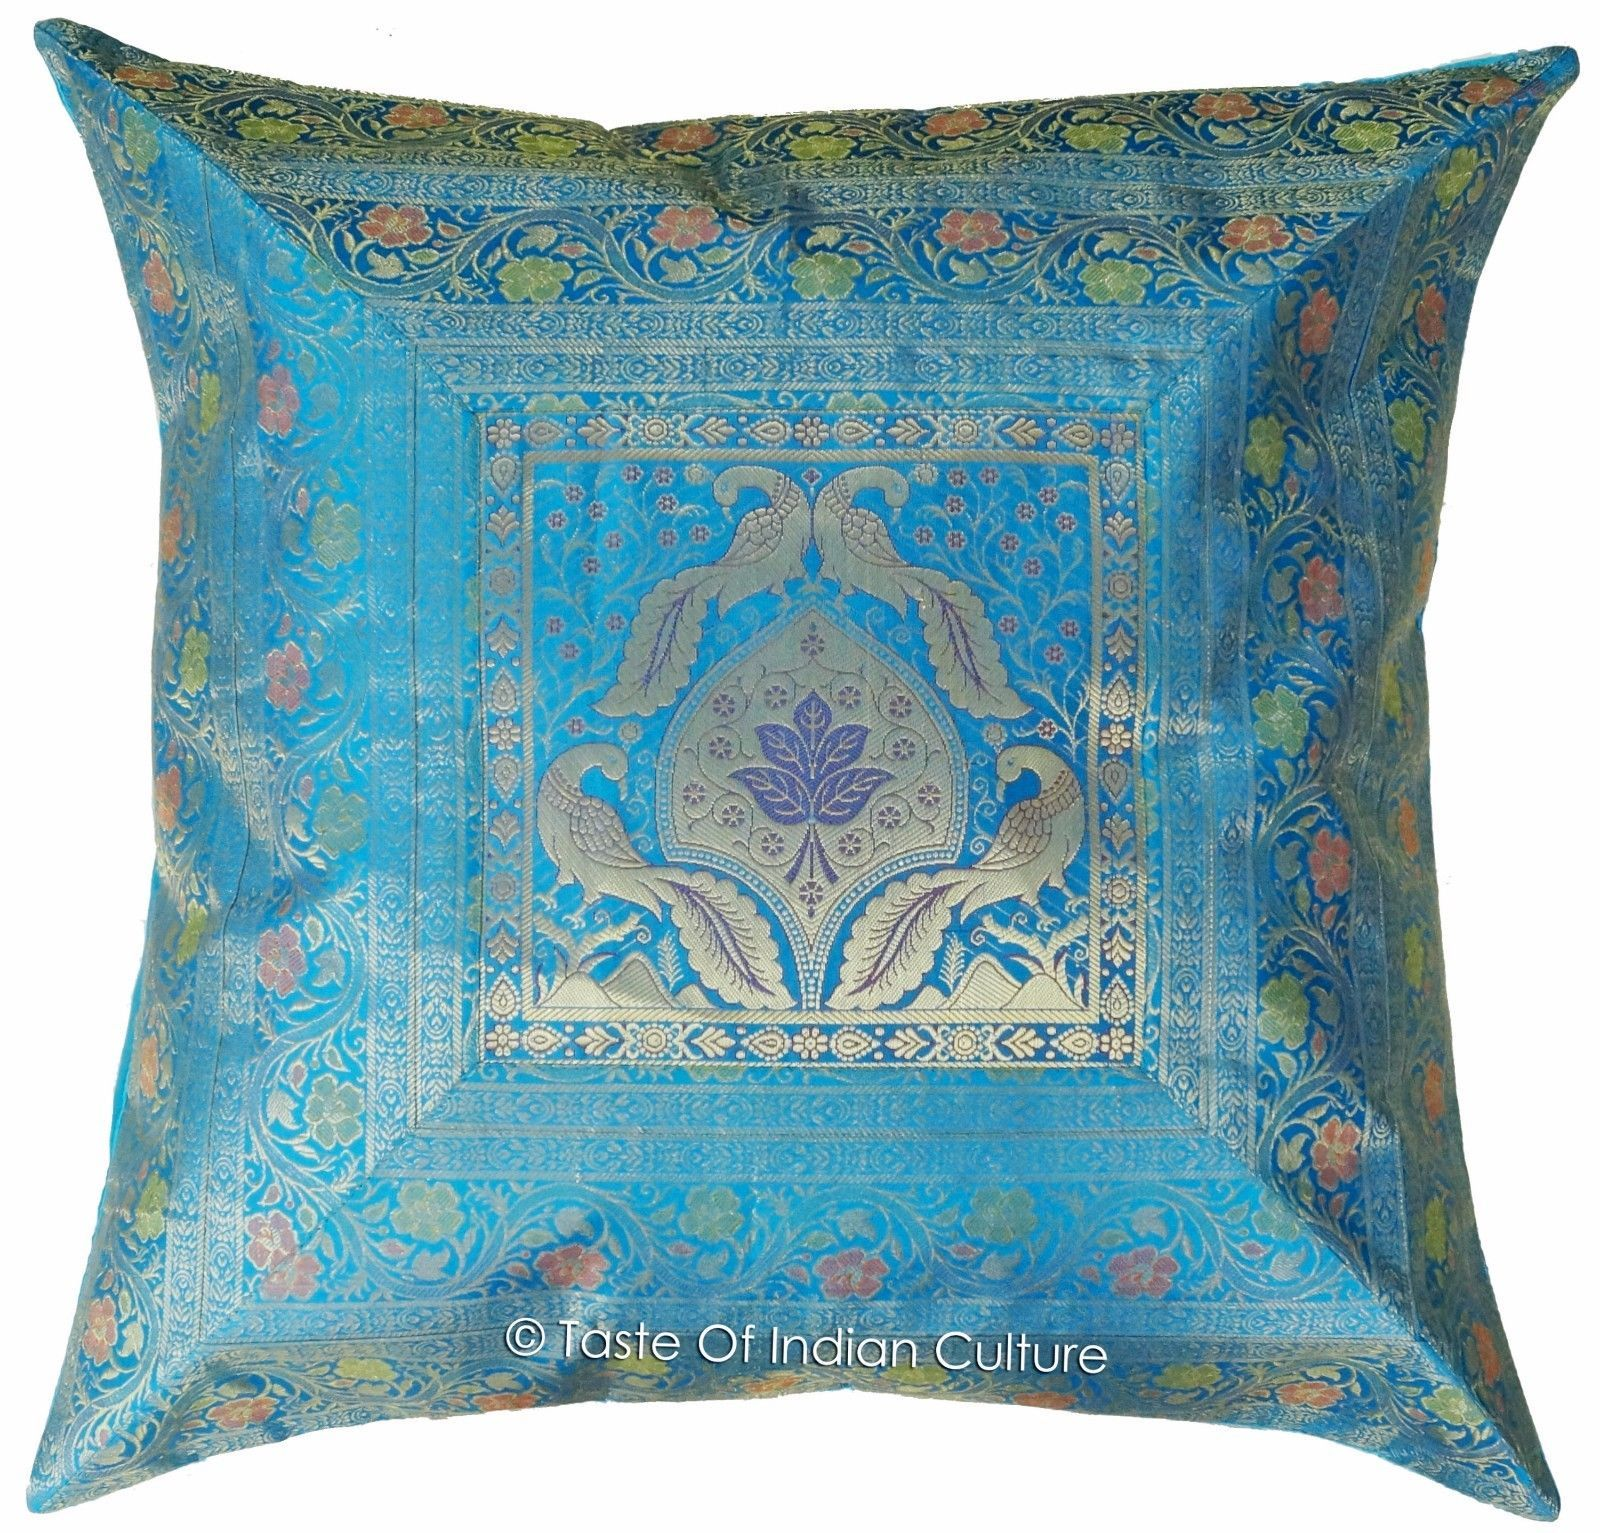 "Primary image for 26""x26"" Turquoise Blue Euro Sham Pillow Cover Brocade Cushion Throw Indian Decor"